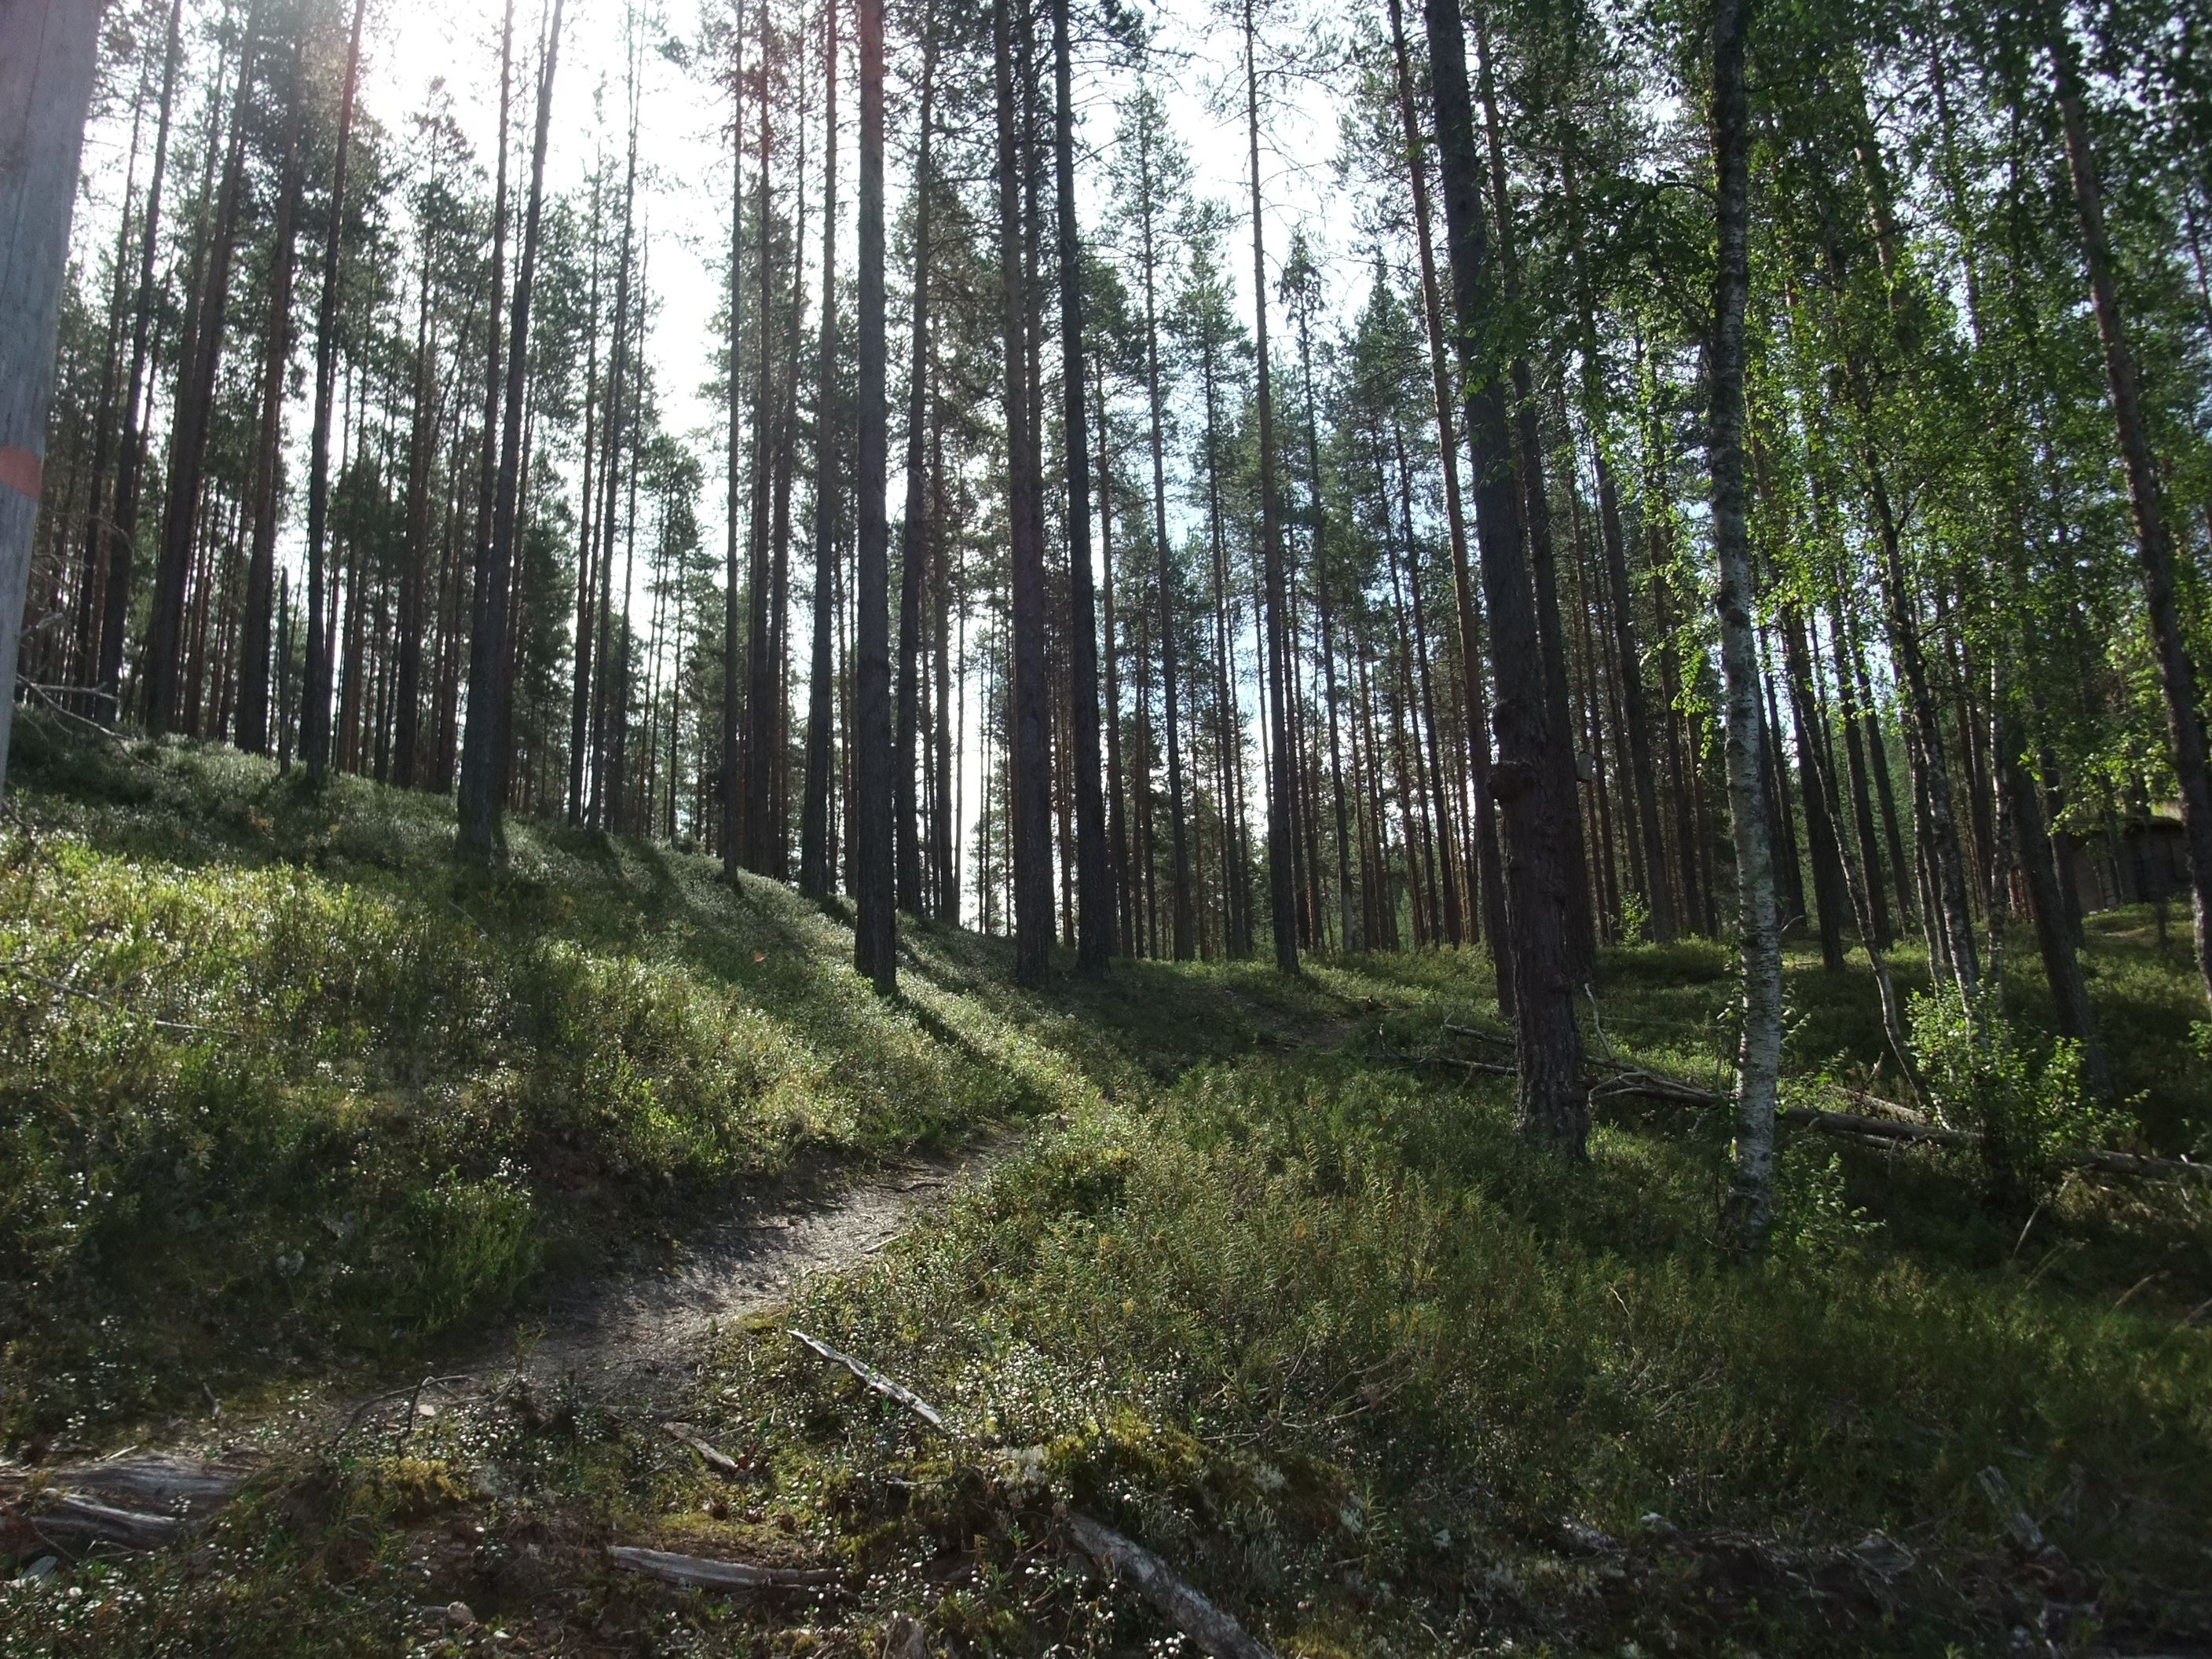 The Isälvsleden Trail